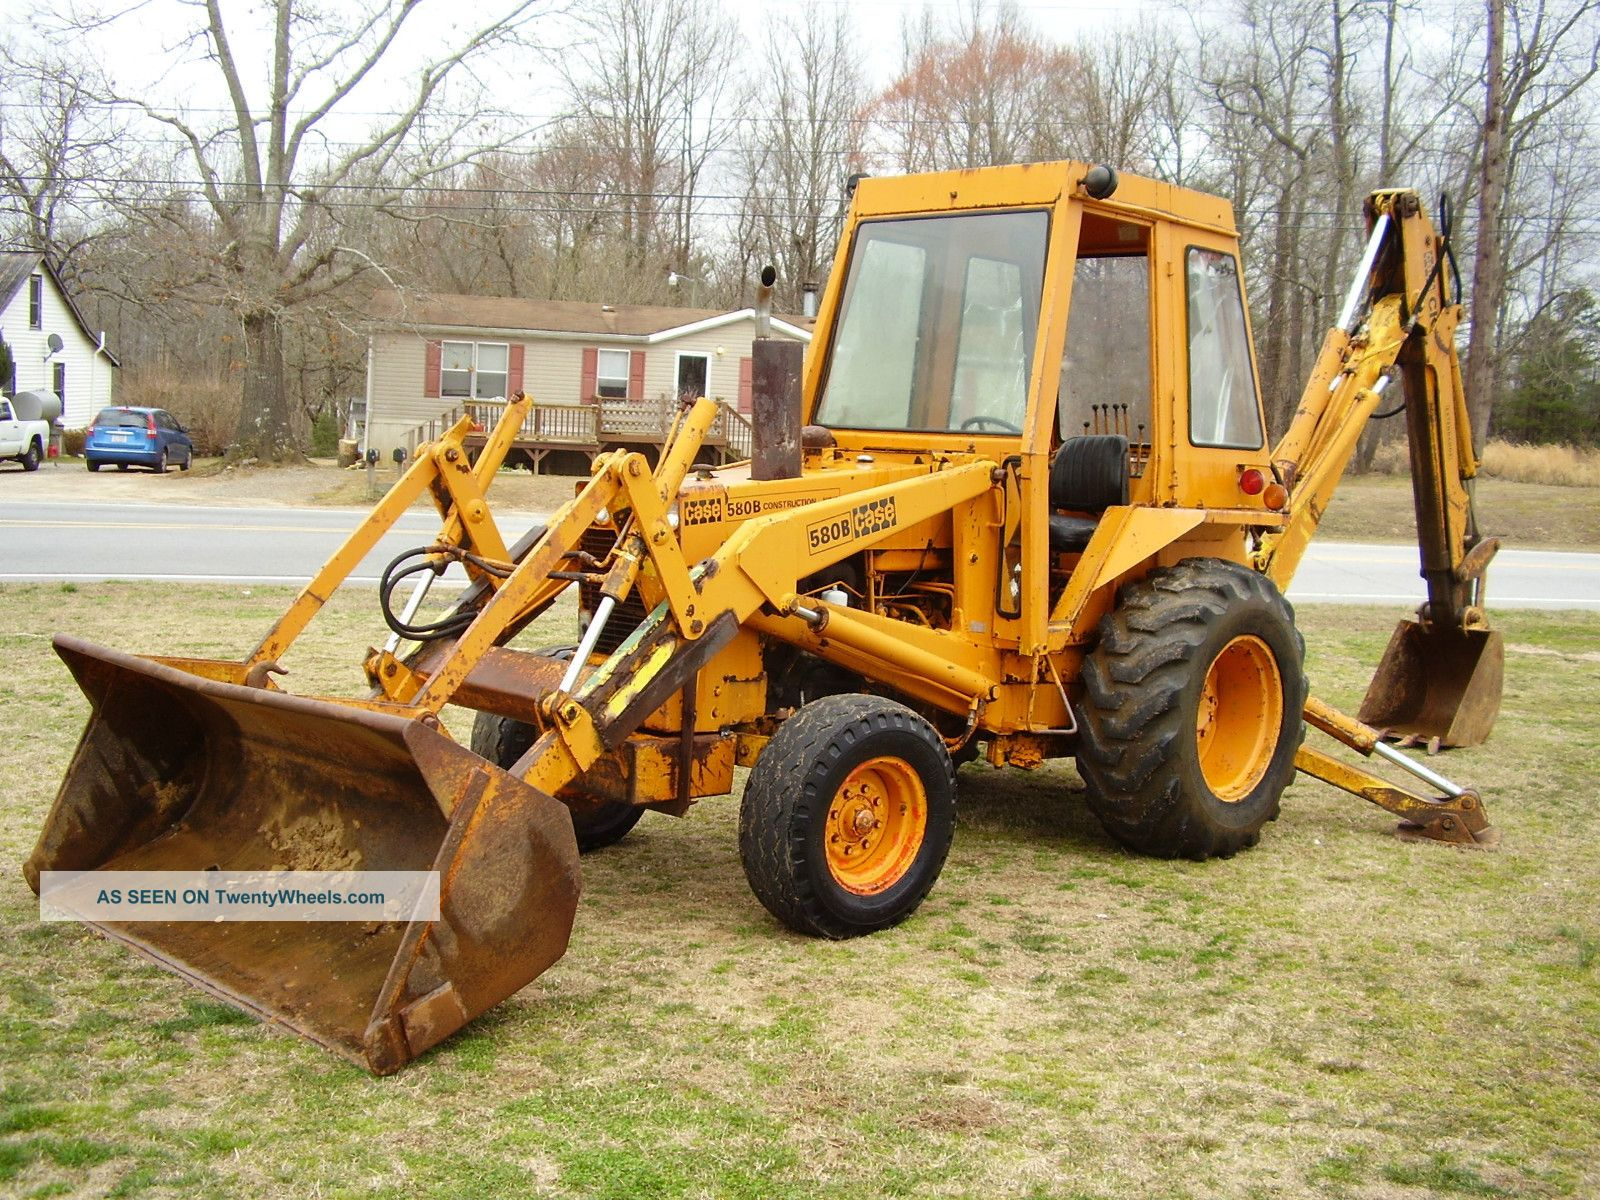 Case 580 B Extendhoe Loader Backhoe Good Farm Machine Backhoe Loaders photo